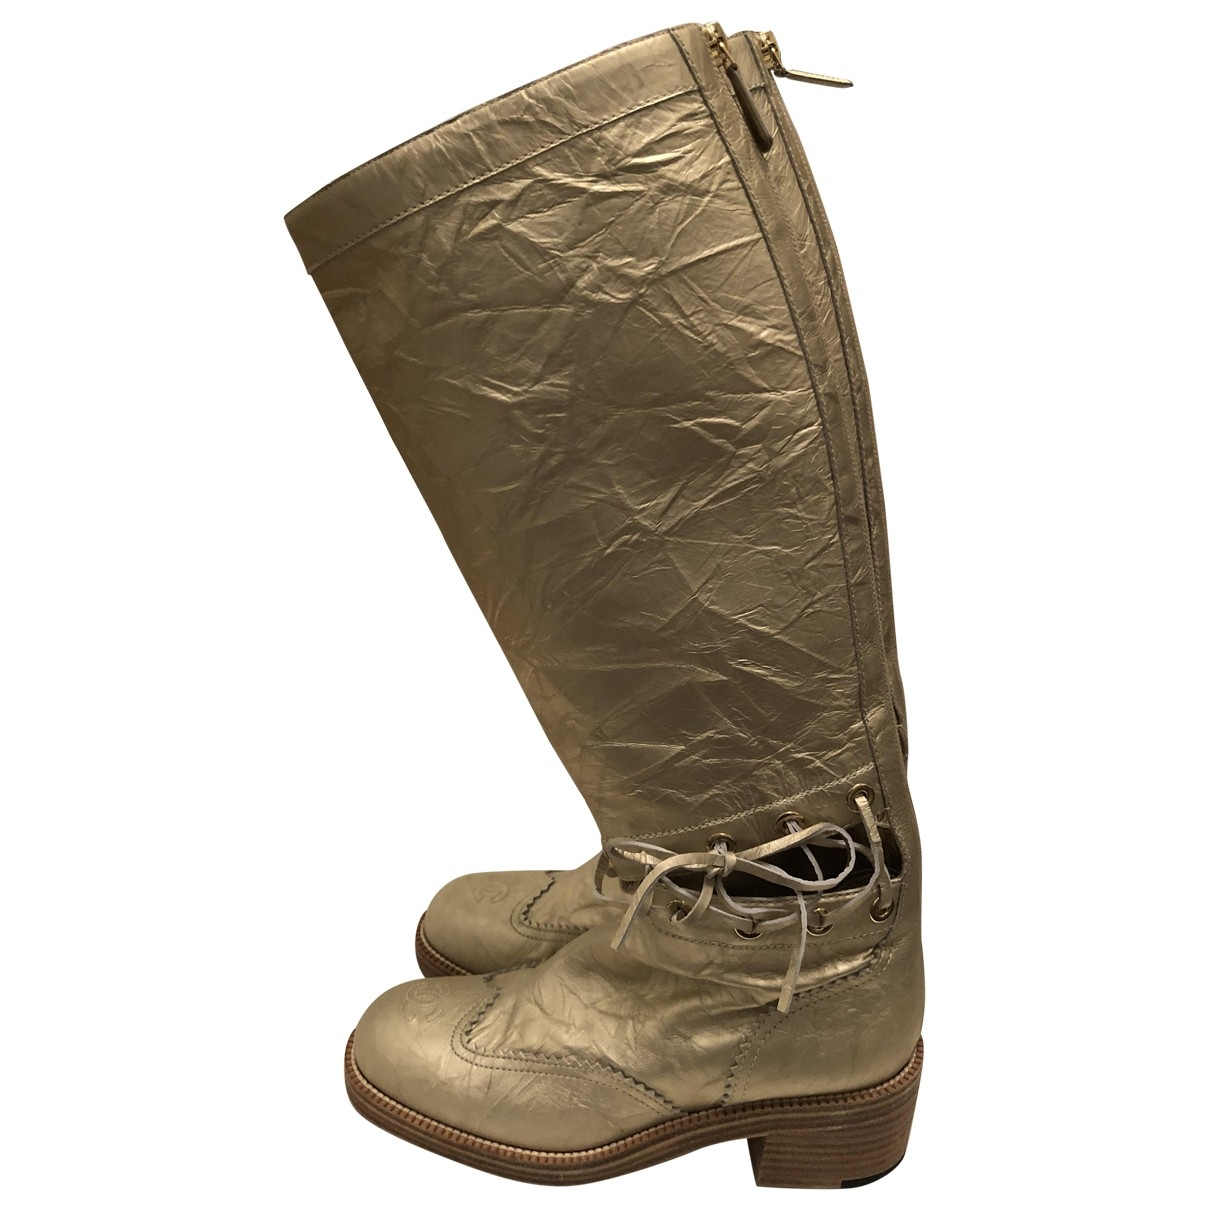 Chanel \N Gold Leather Boots for Women 38 EU